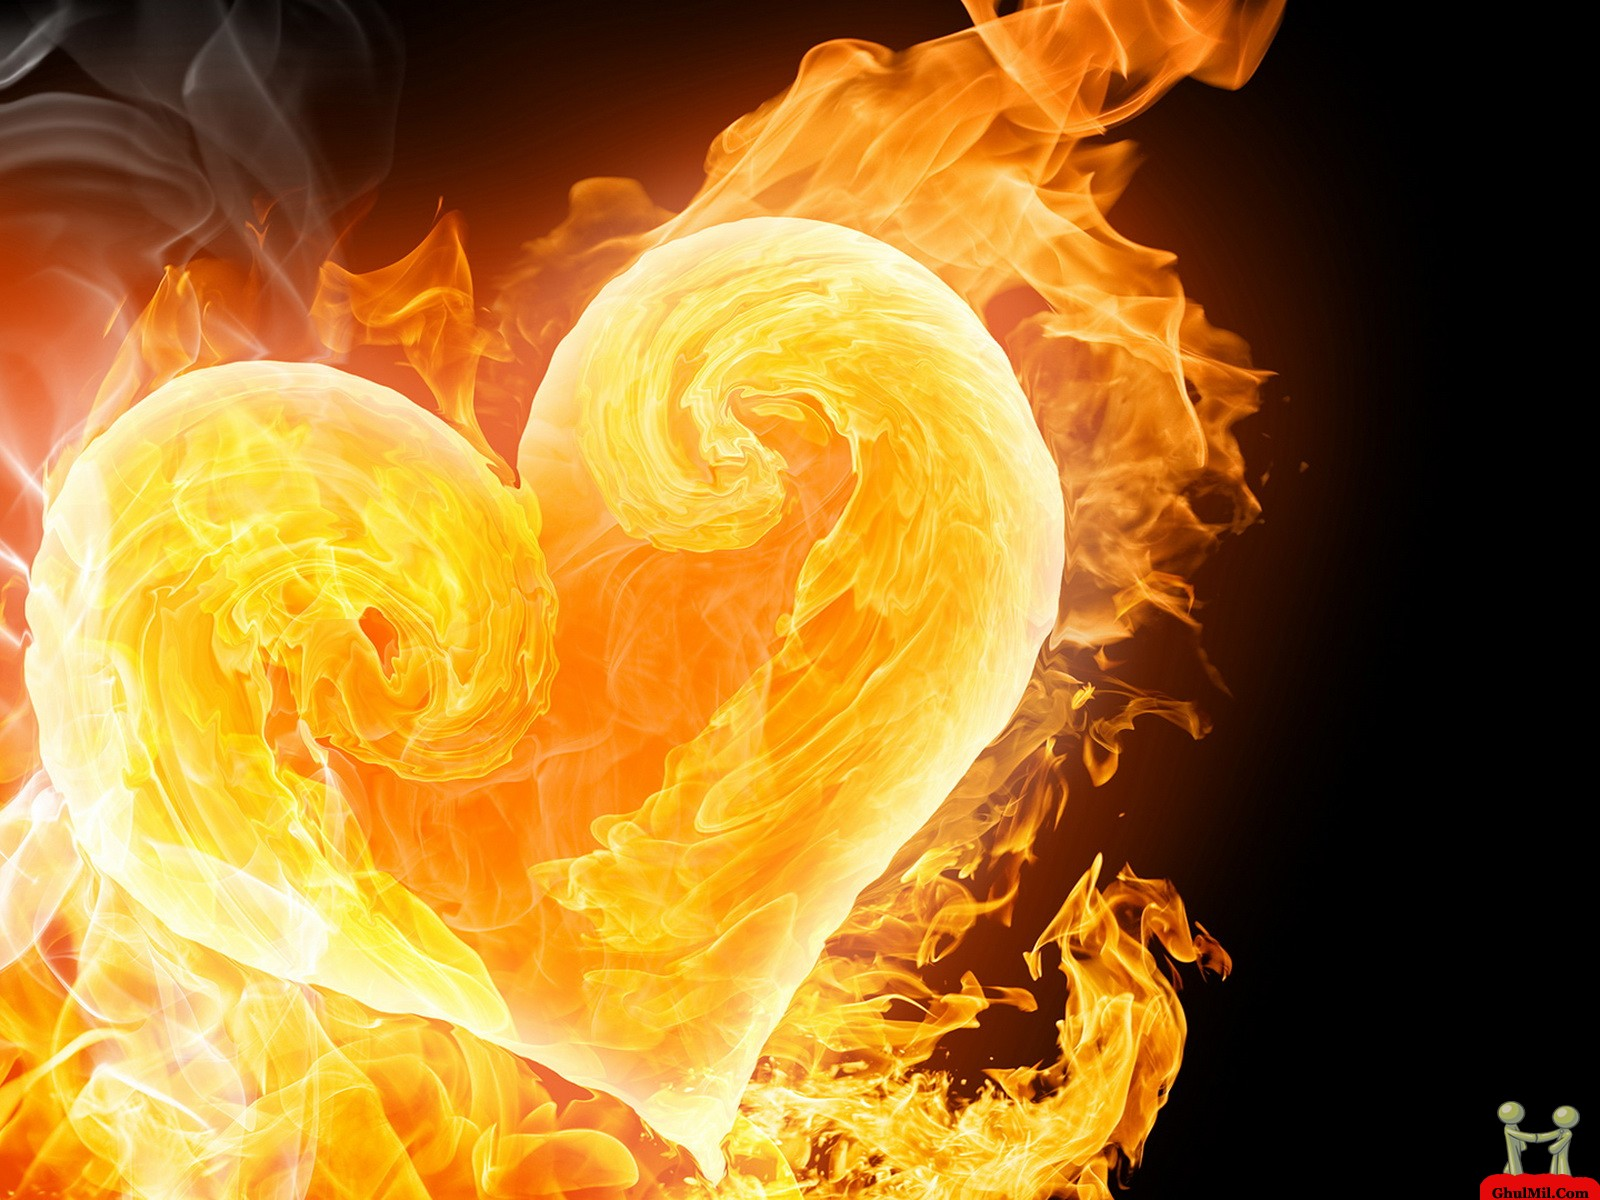 http://4.bp.blogspot.com/-rFIarDJEVLk/UHXMyL7E-DI/AAAAAAAAAKg/g2OV7WYG8OU/s1600/beautiful-3d-fire-burning-love-heart-hd-wallpaper.jpg